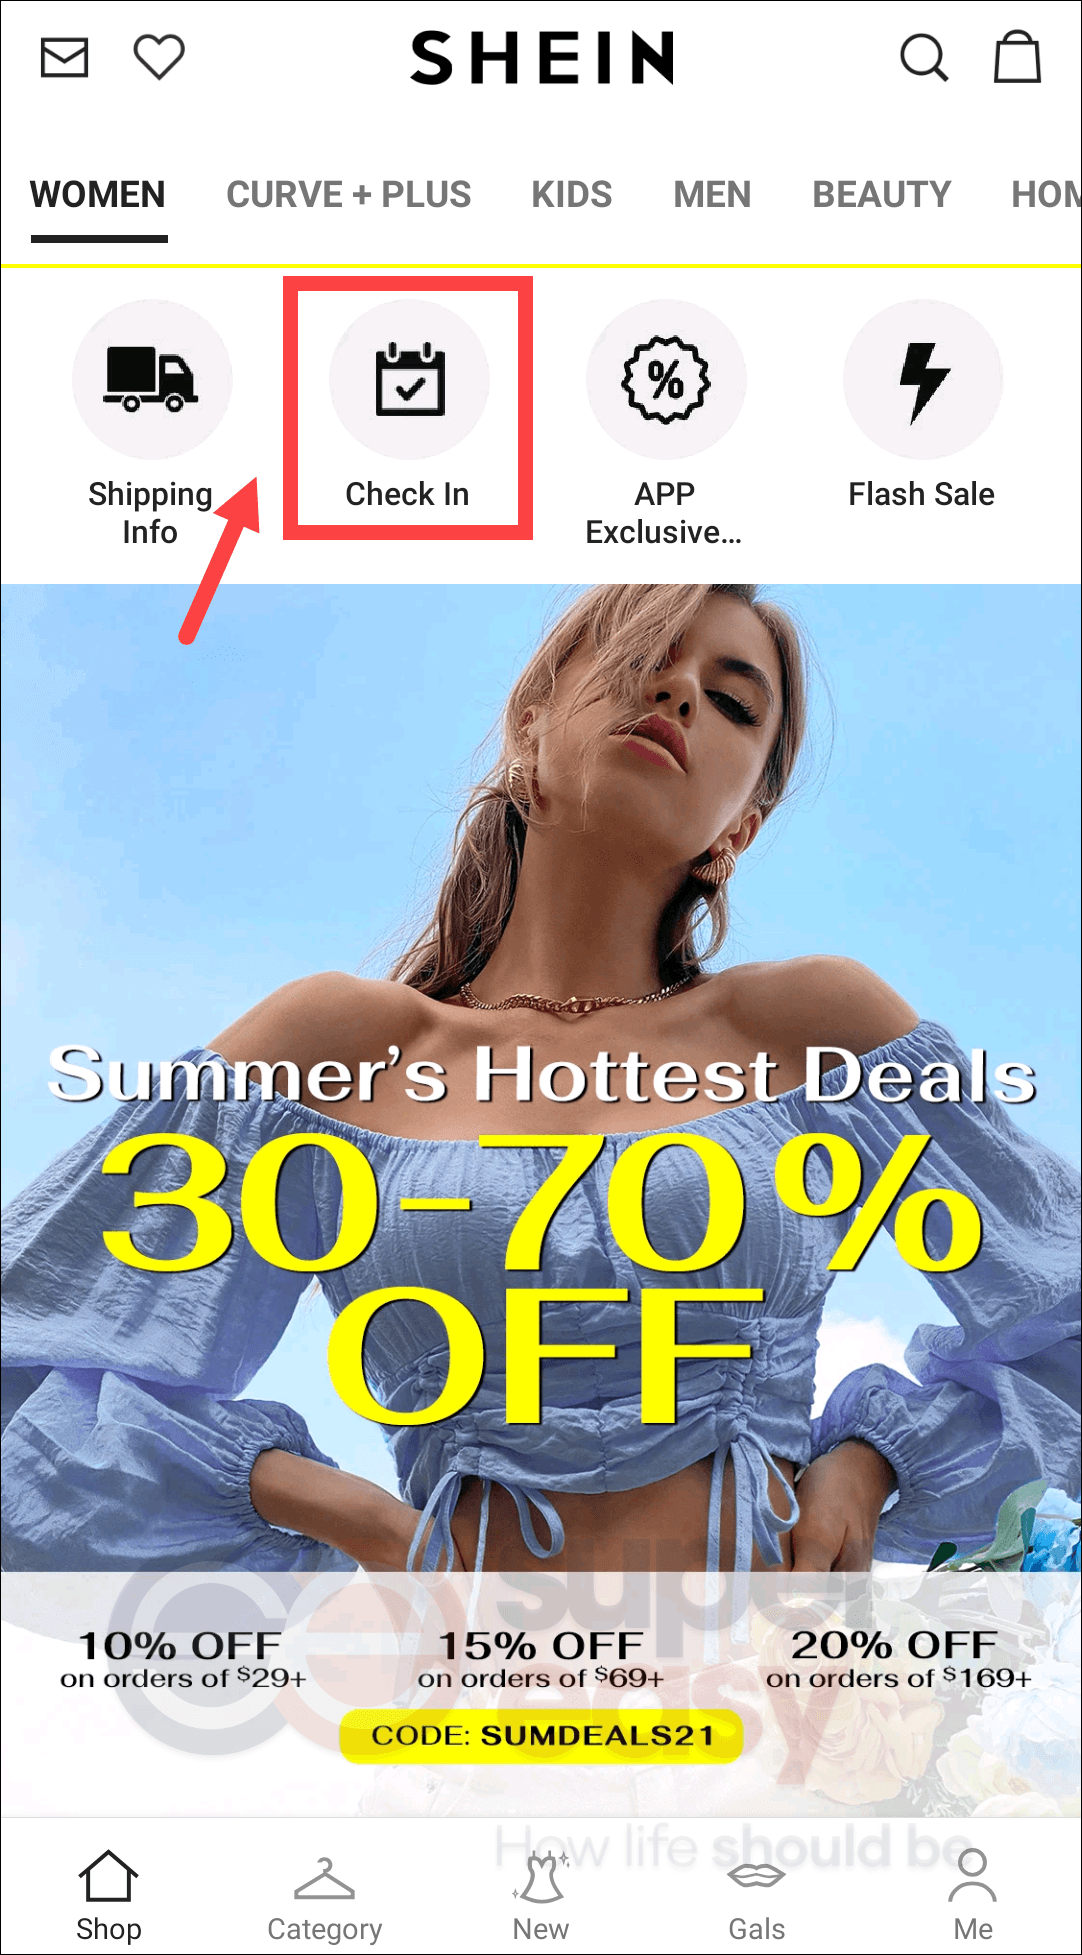 SHEIN check in earn points